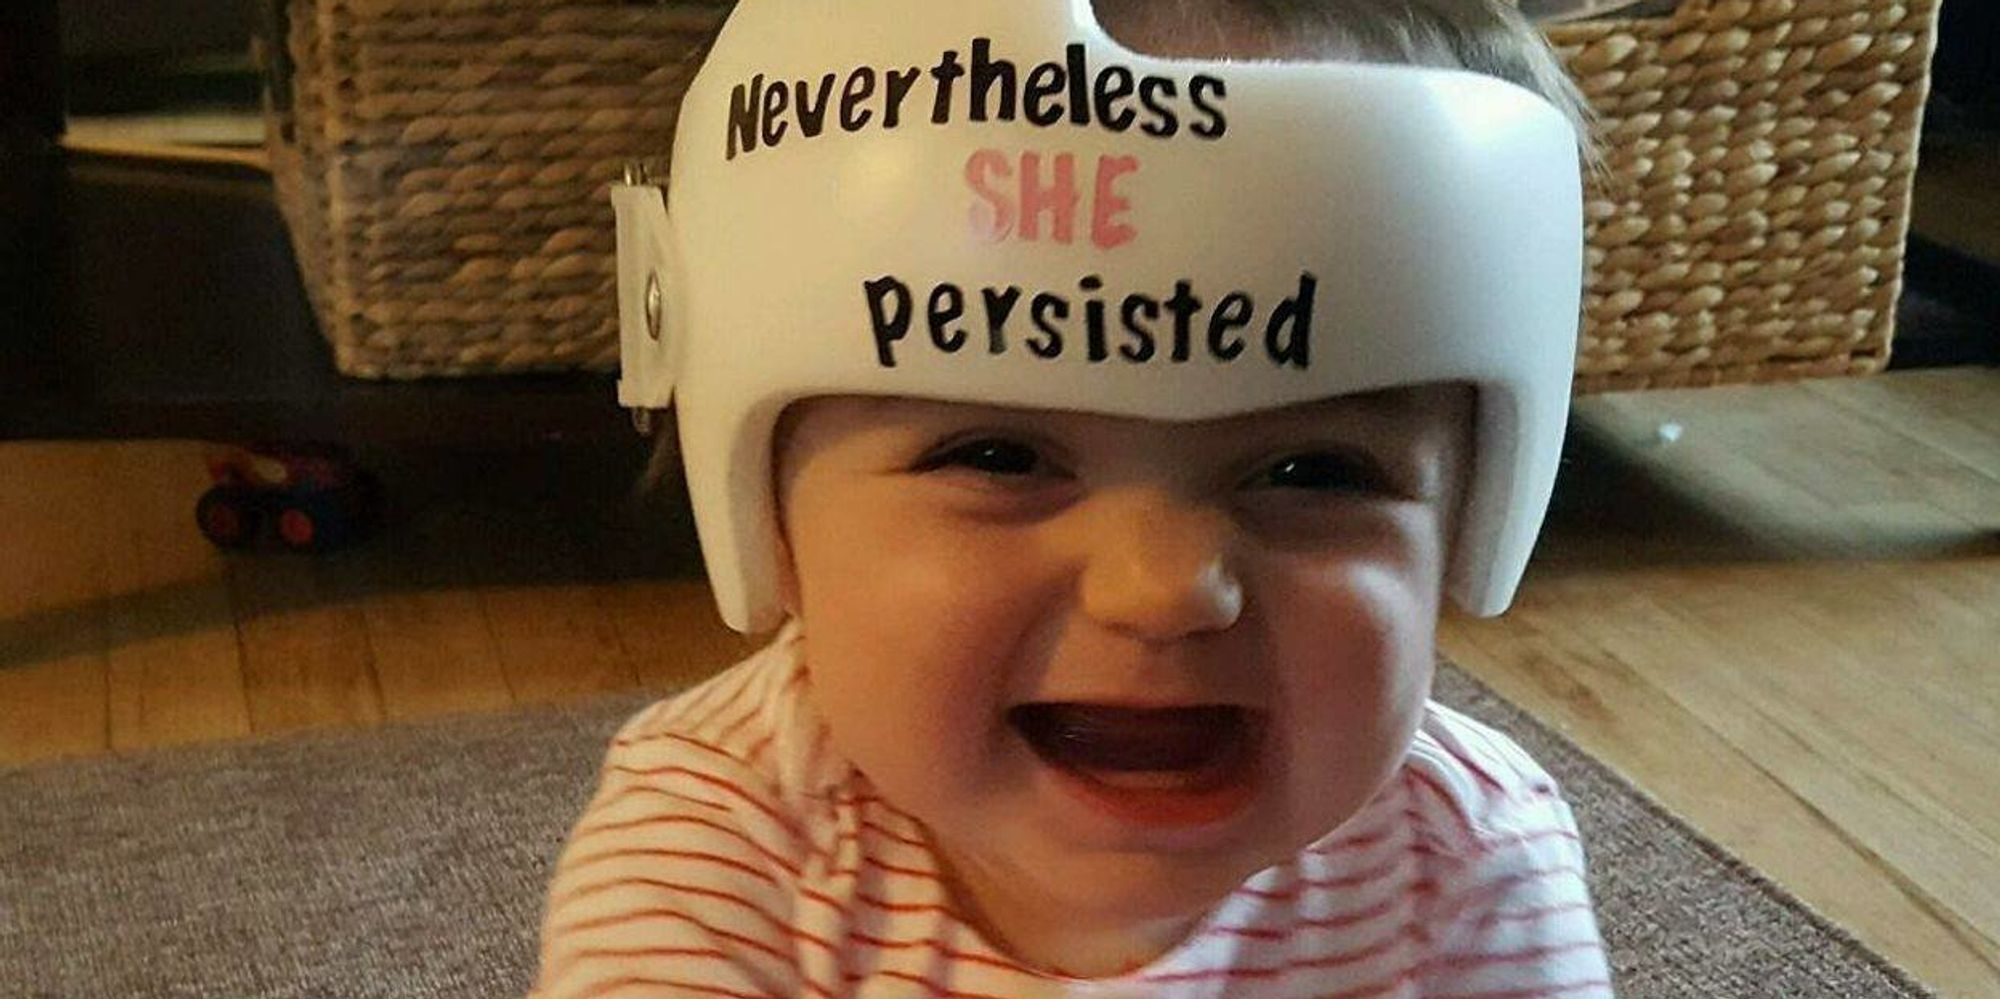 Former NICU Baby Sports Helmet With Totally Fitting Phrase